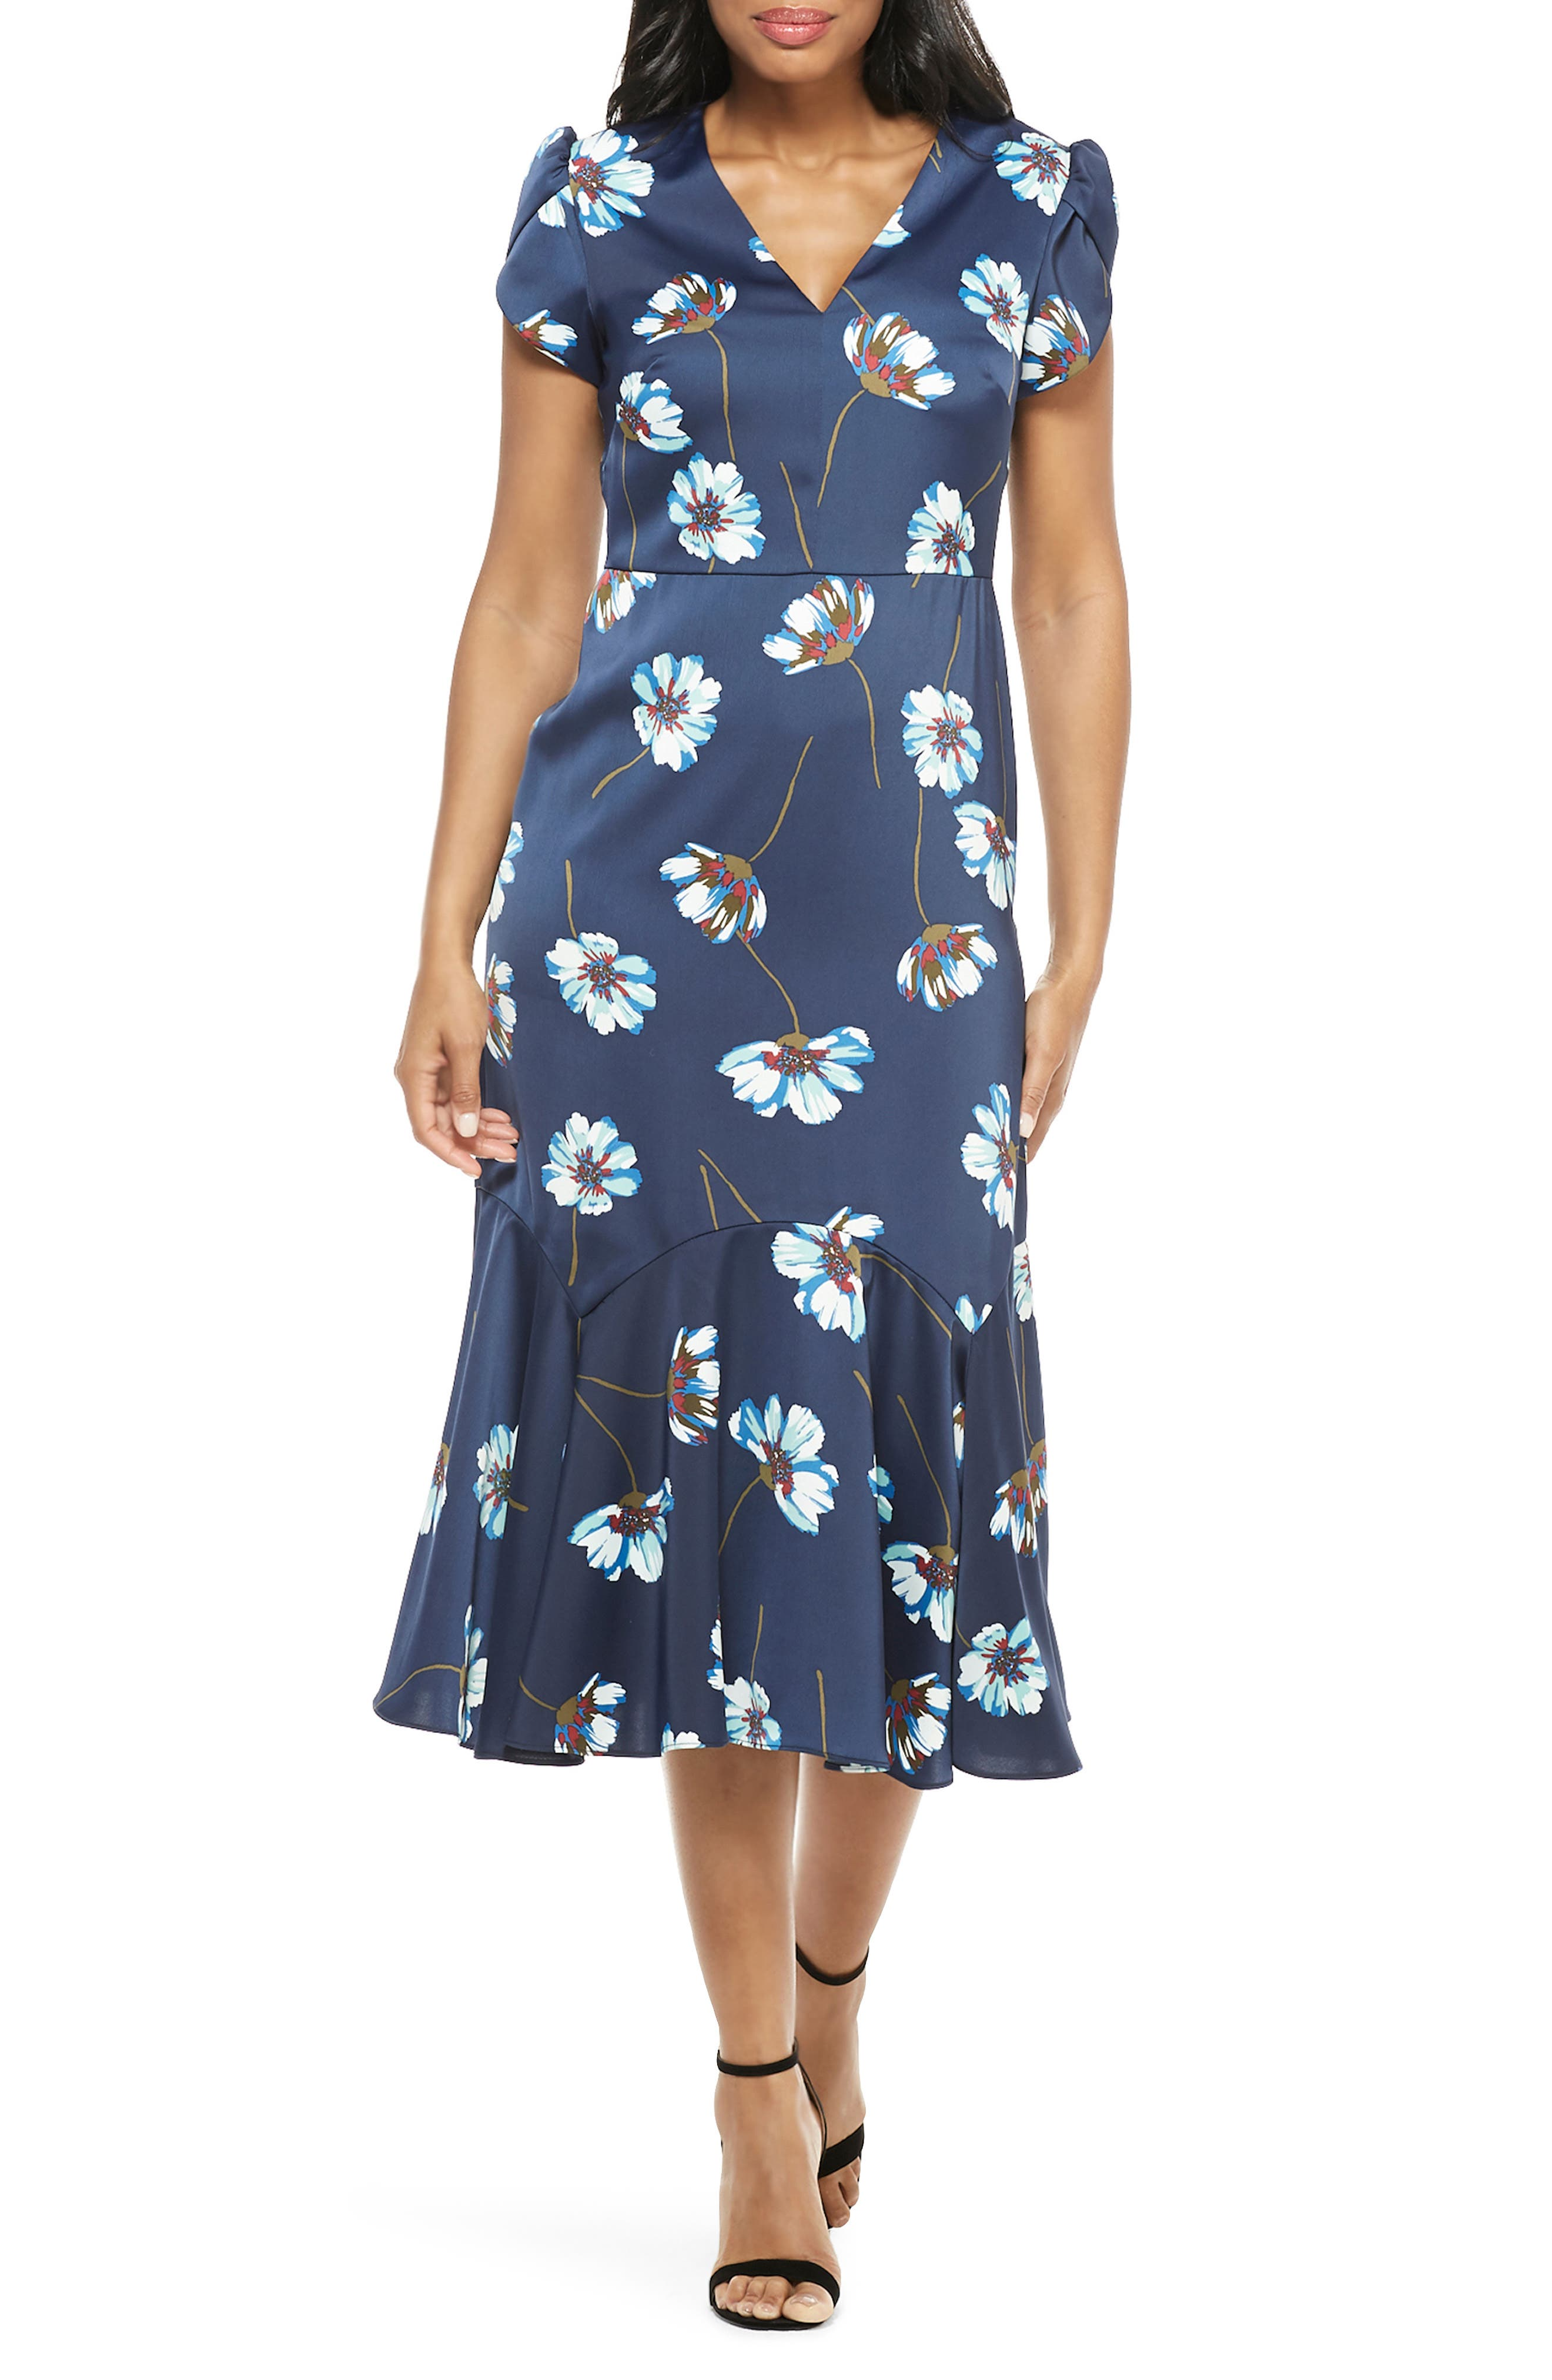 1930s Day Dresses, Afternoon Dresses History Womens Maggy London Floral Print Charmeuse Midi Dress $148.00 AT vintagedancer.com